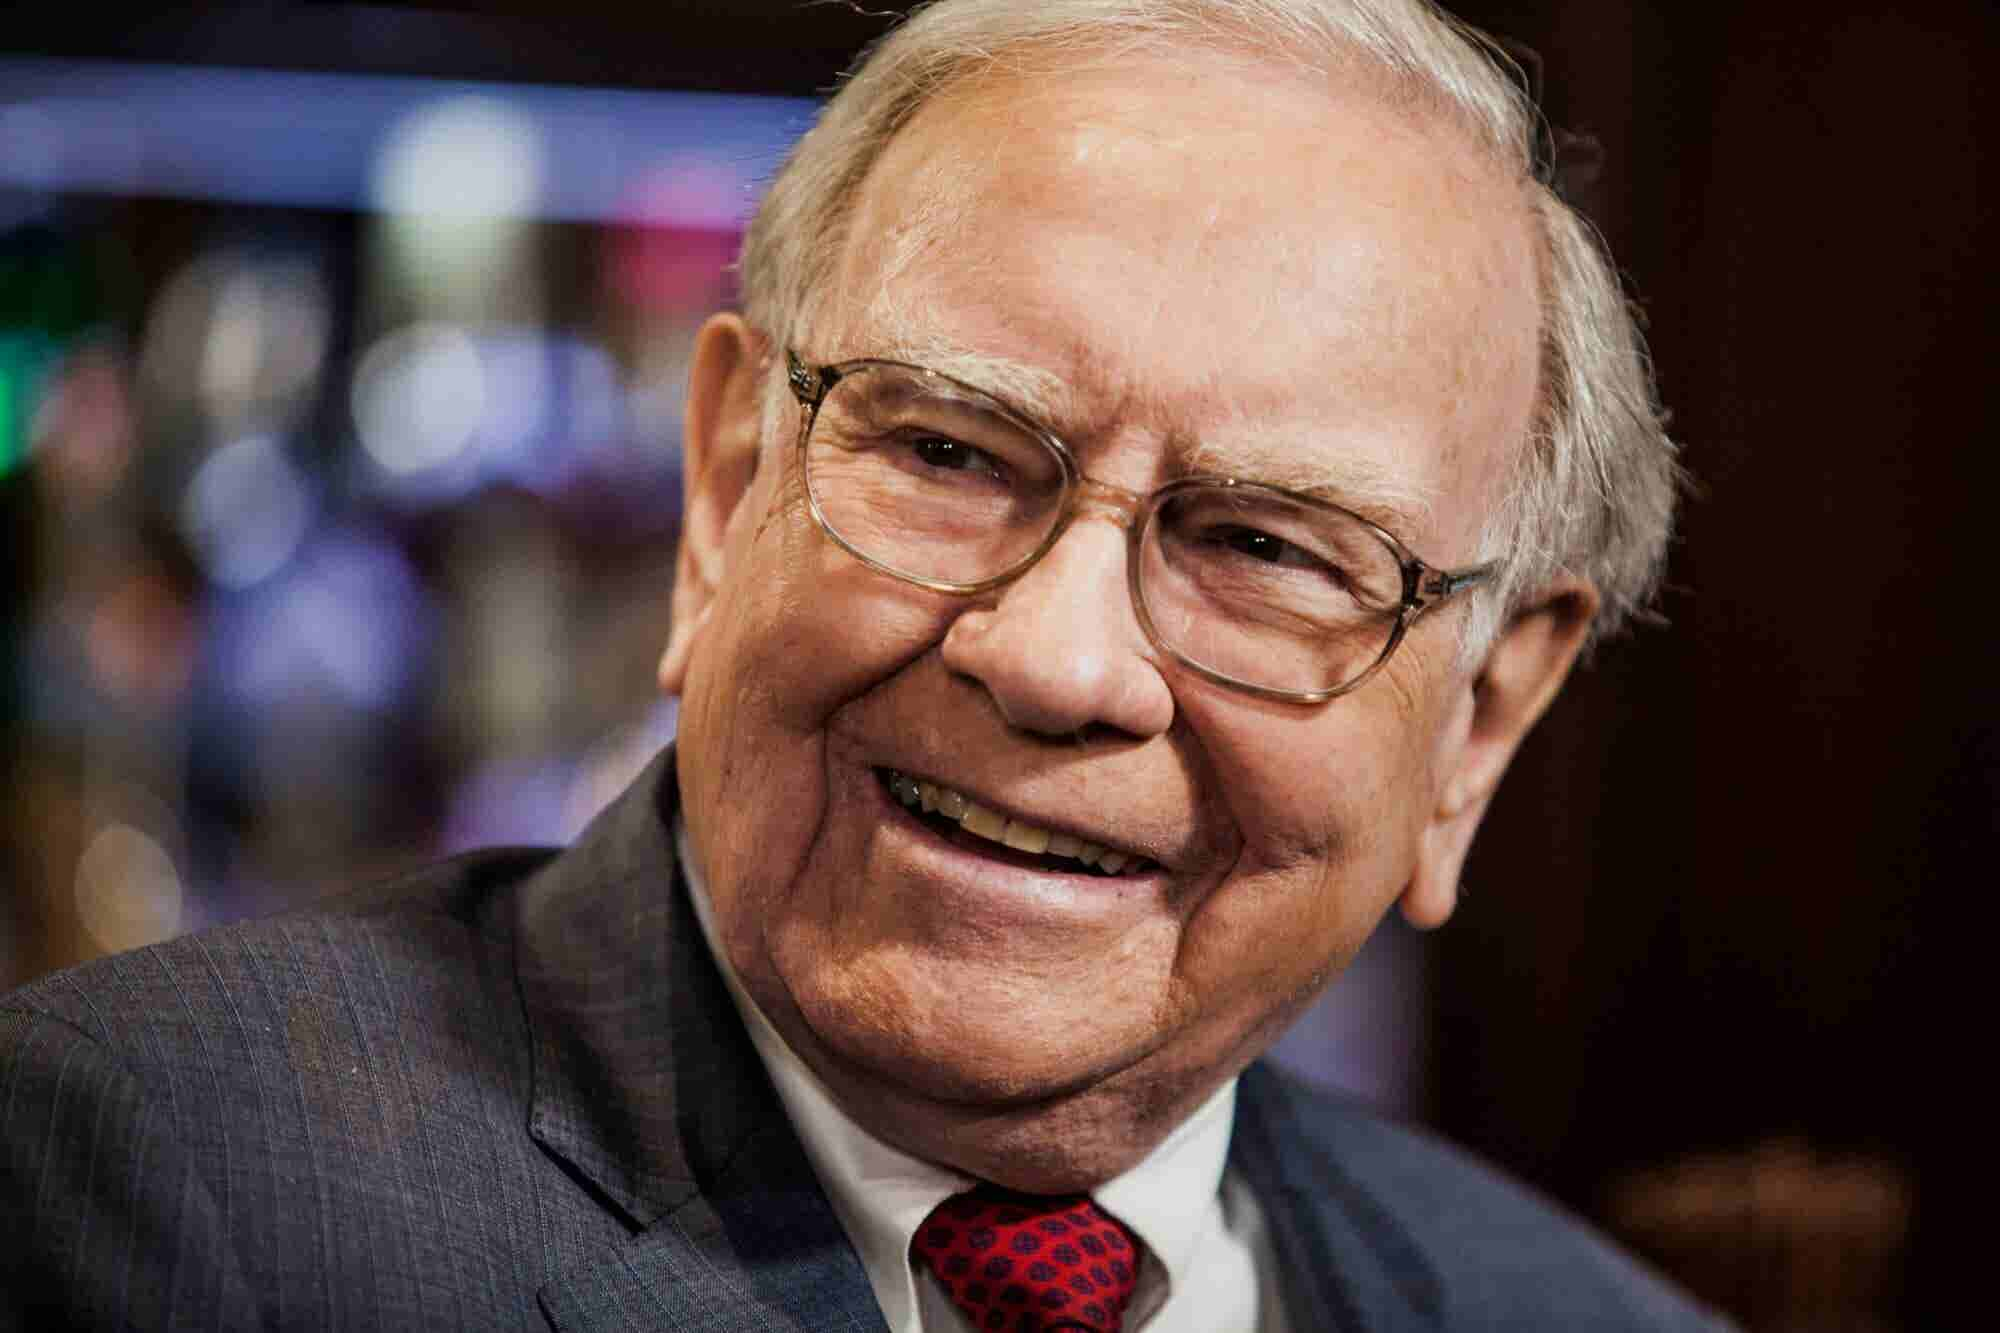 Warren Buffett Says Gratitude and Sharing Success Has Led to His Long-Lasting Fortune